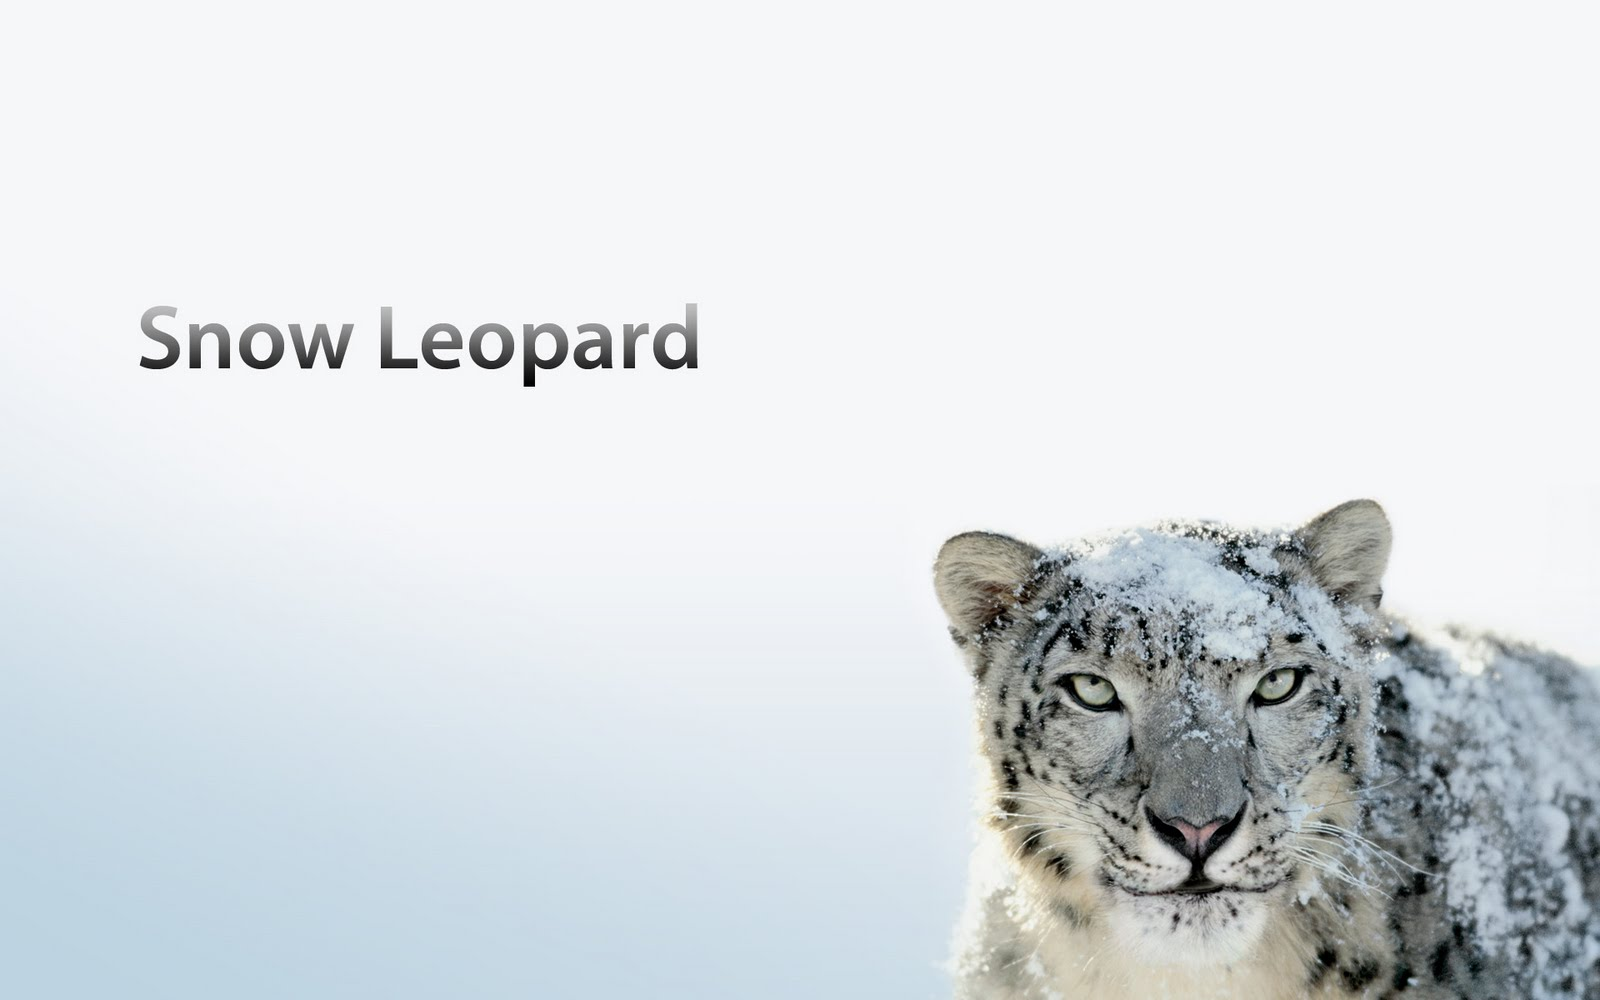 Mac OS X Apple annuncia la fine supporto Snow Leopard